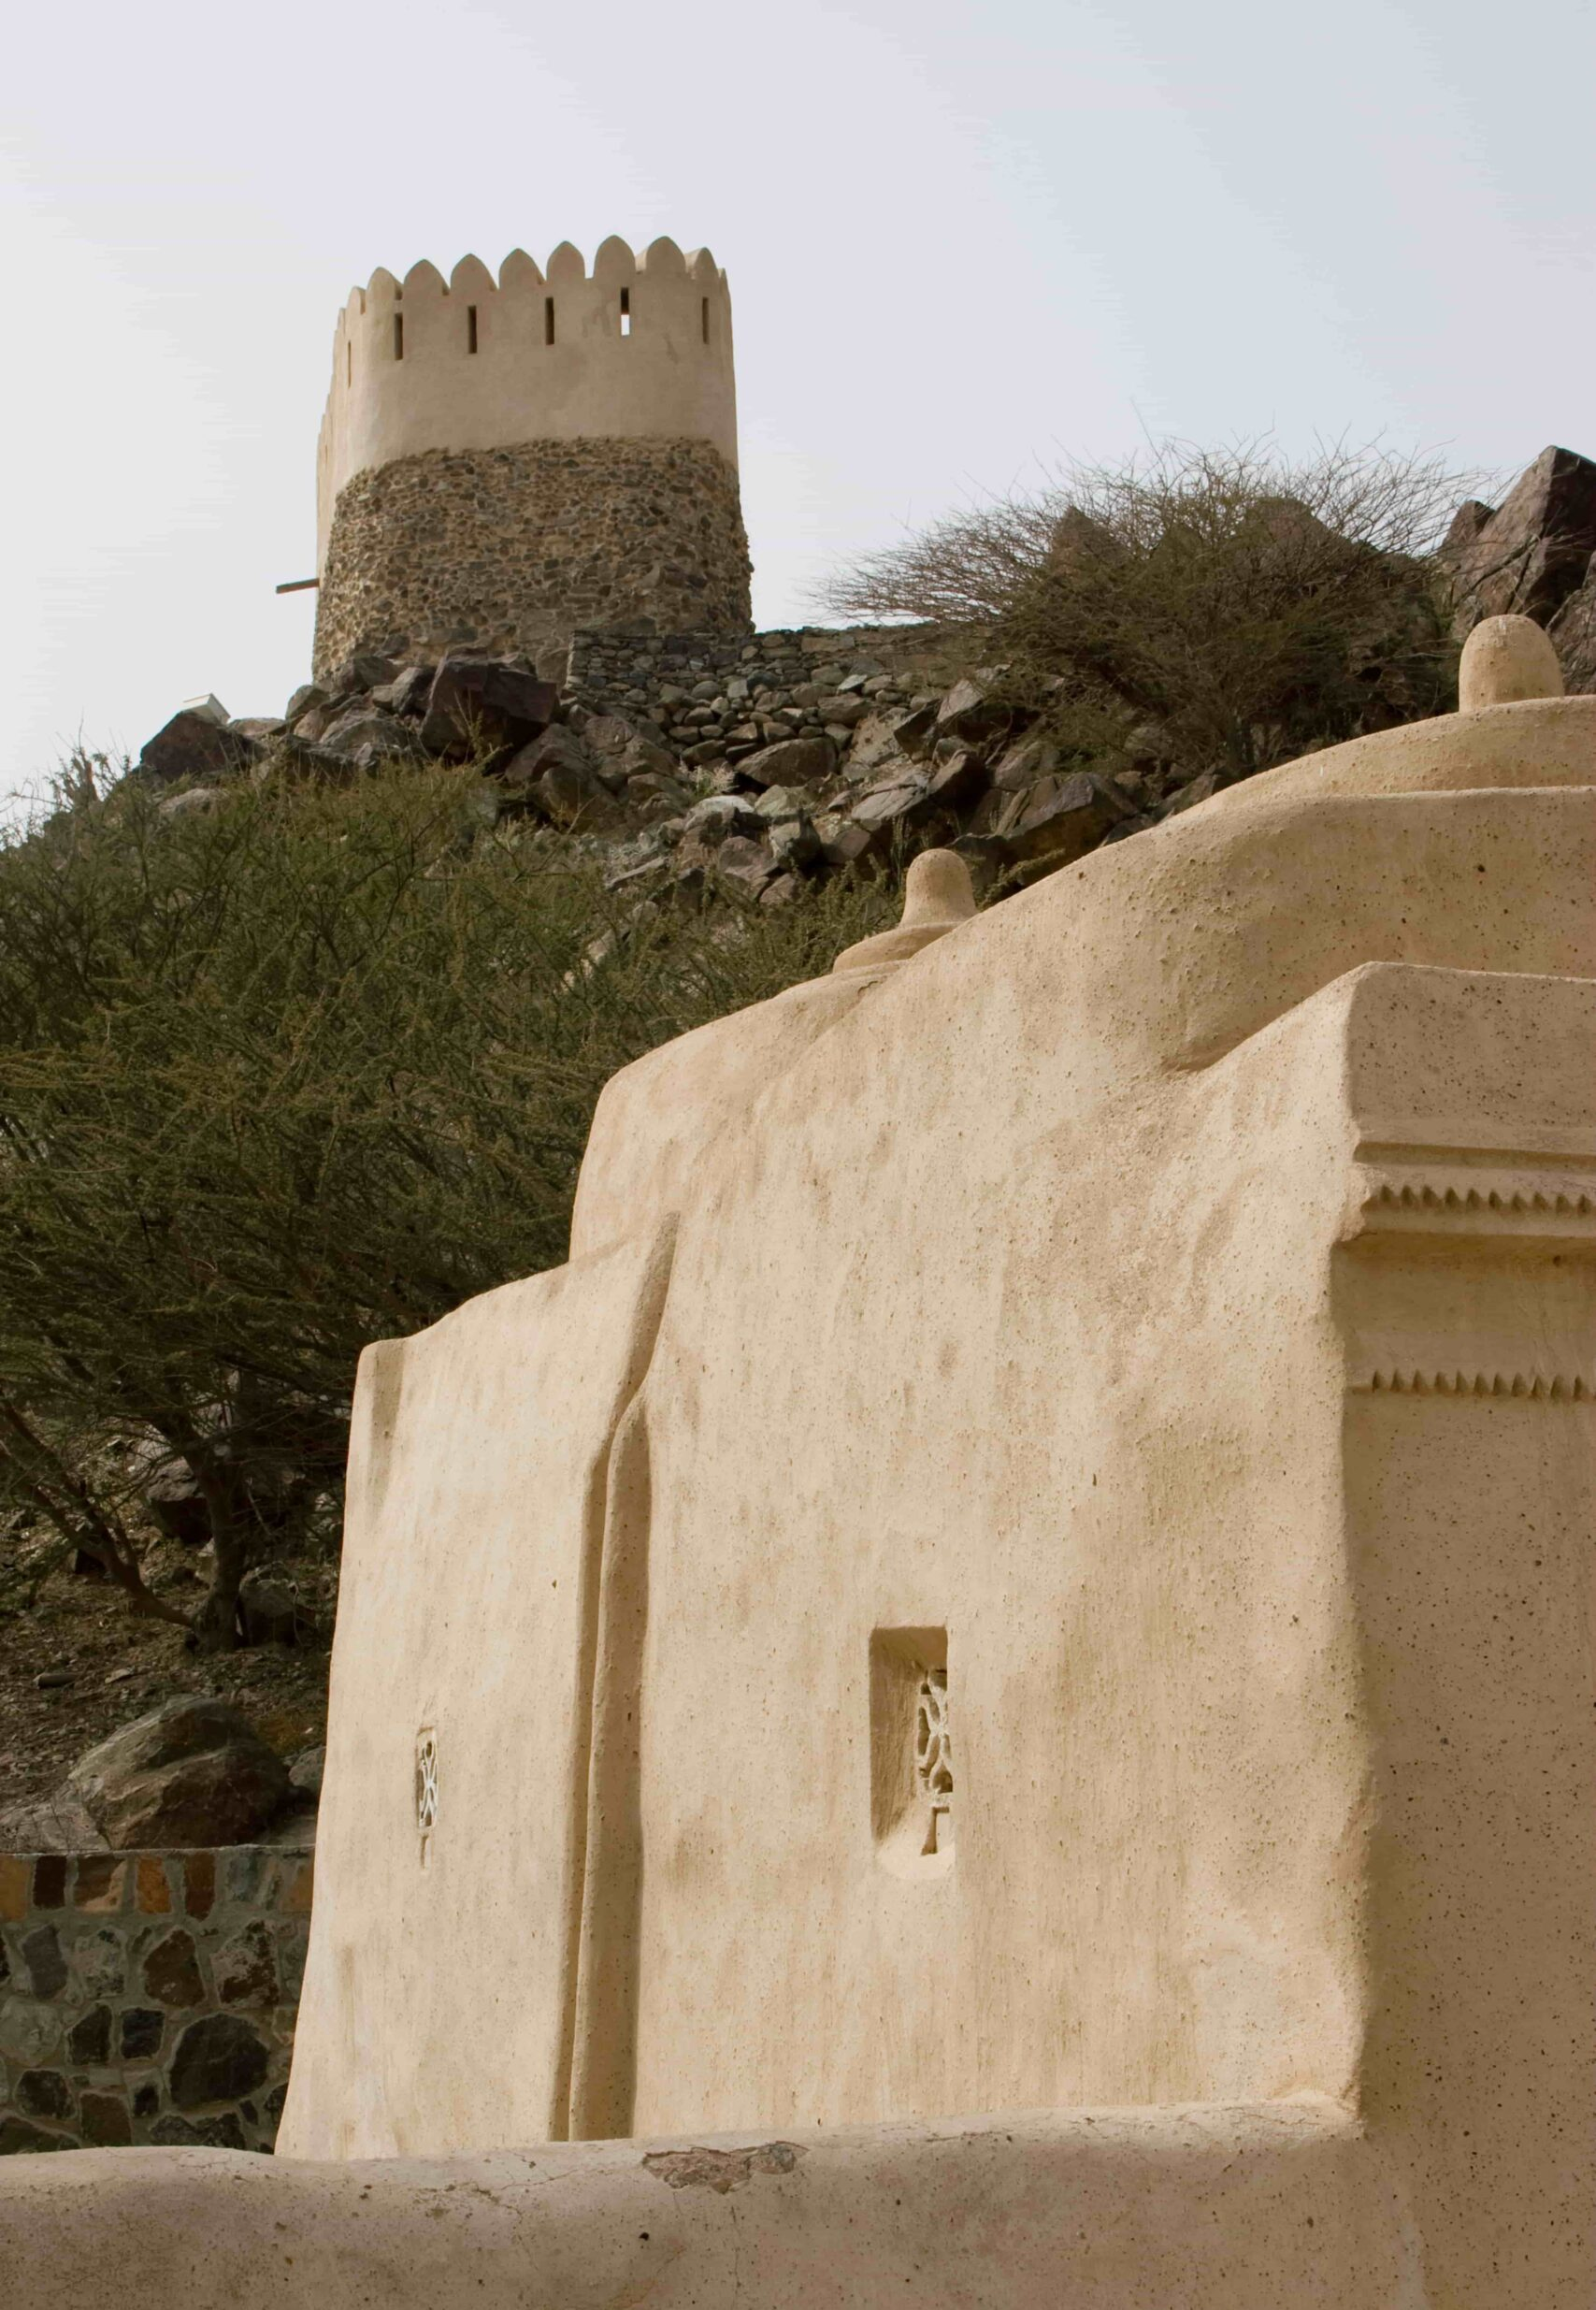 Al Bidyah Mosque over looking a fort in Fujairah